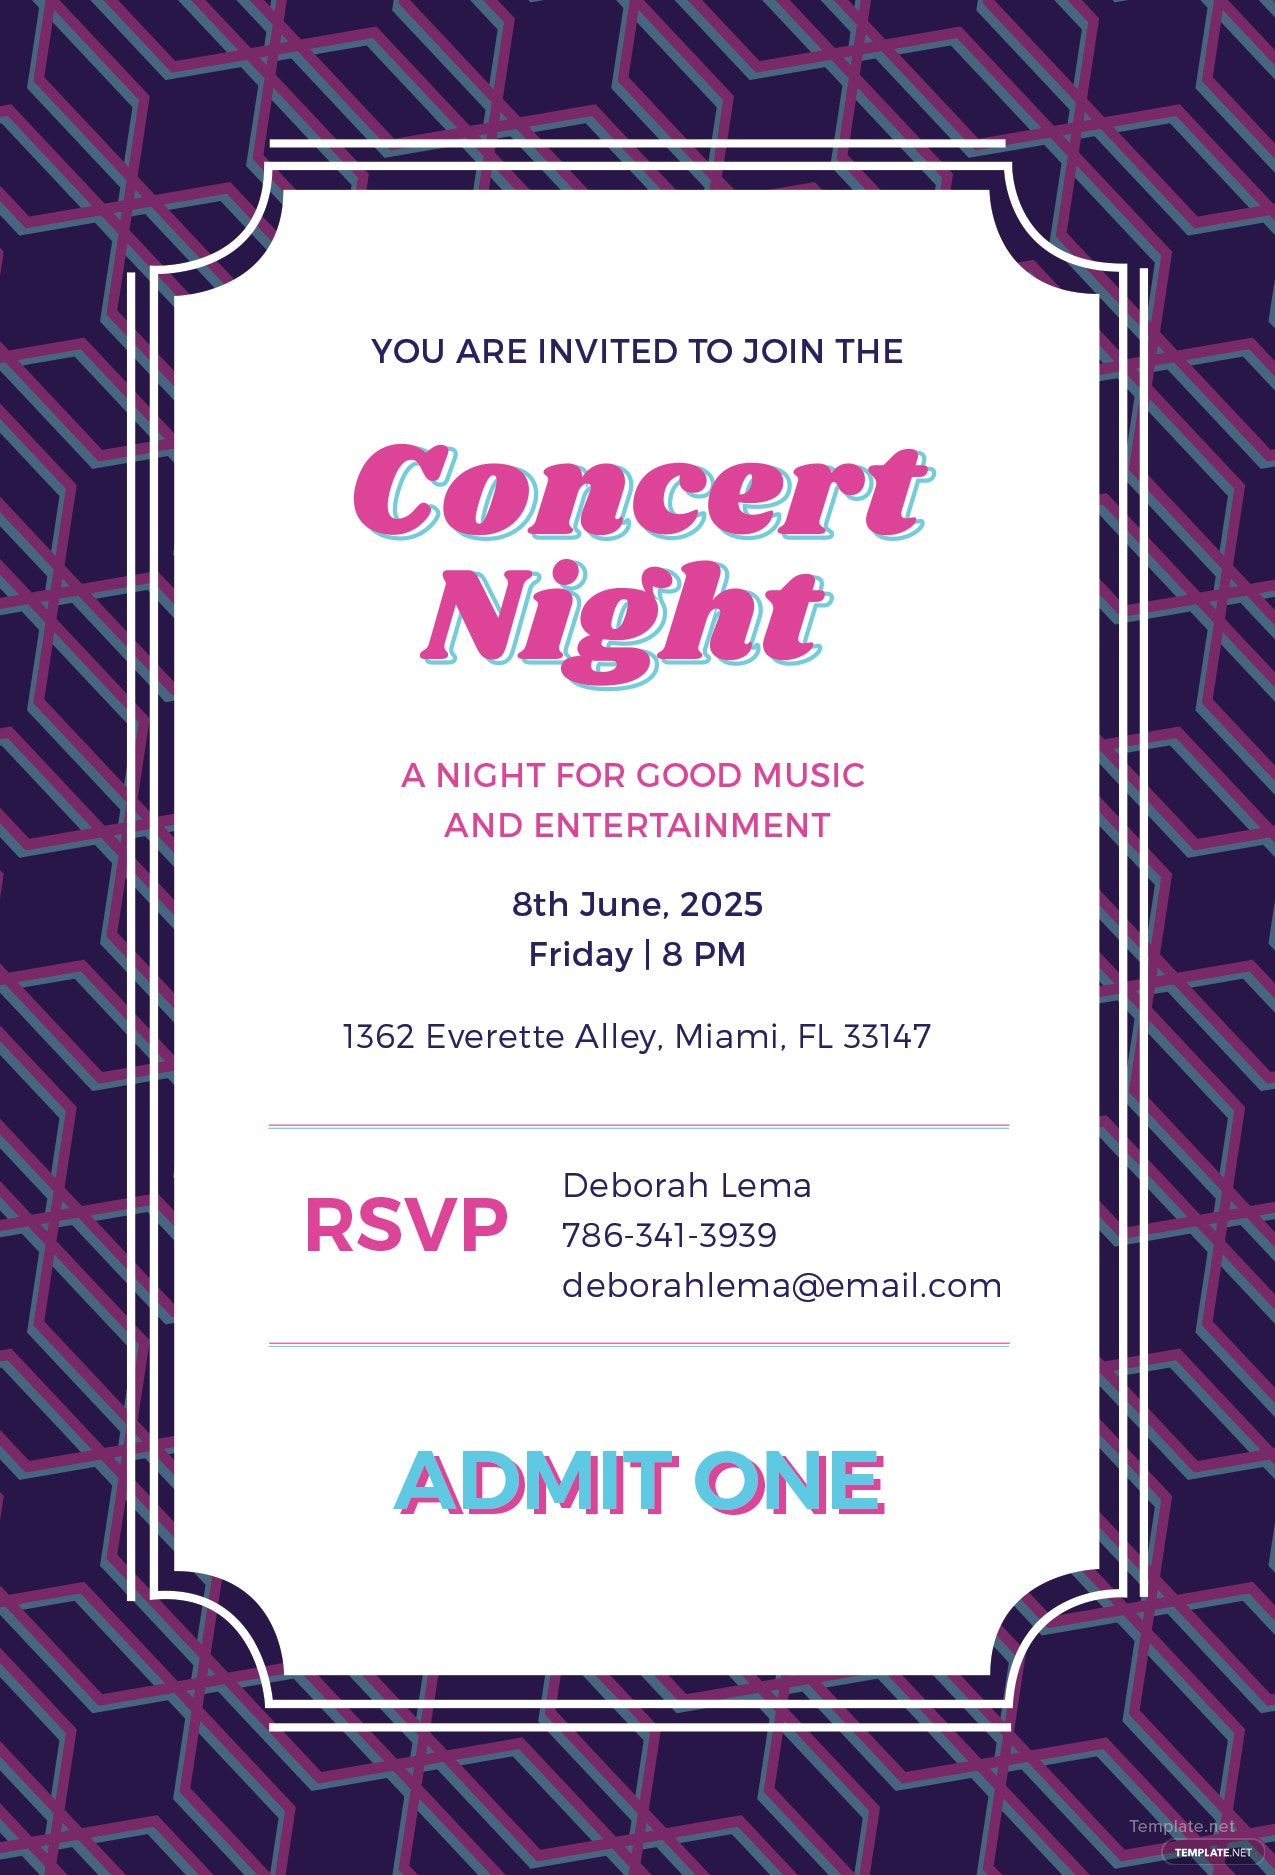 concert ticket template free - free concert ticket invitation template in adobe photoshop